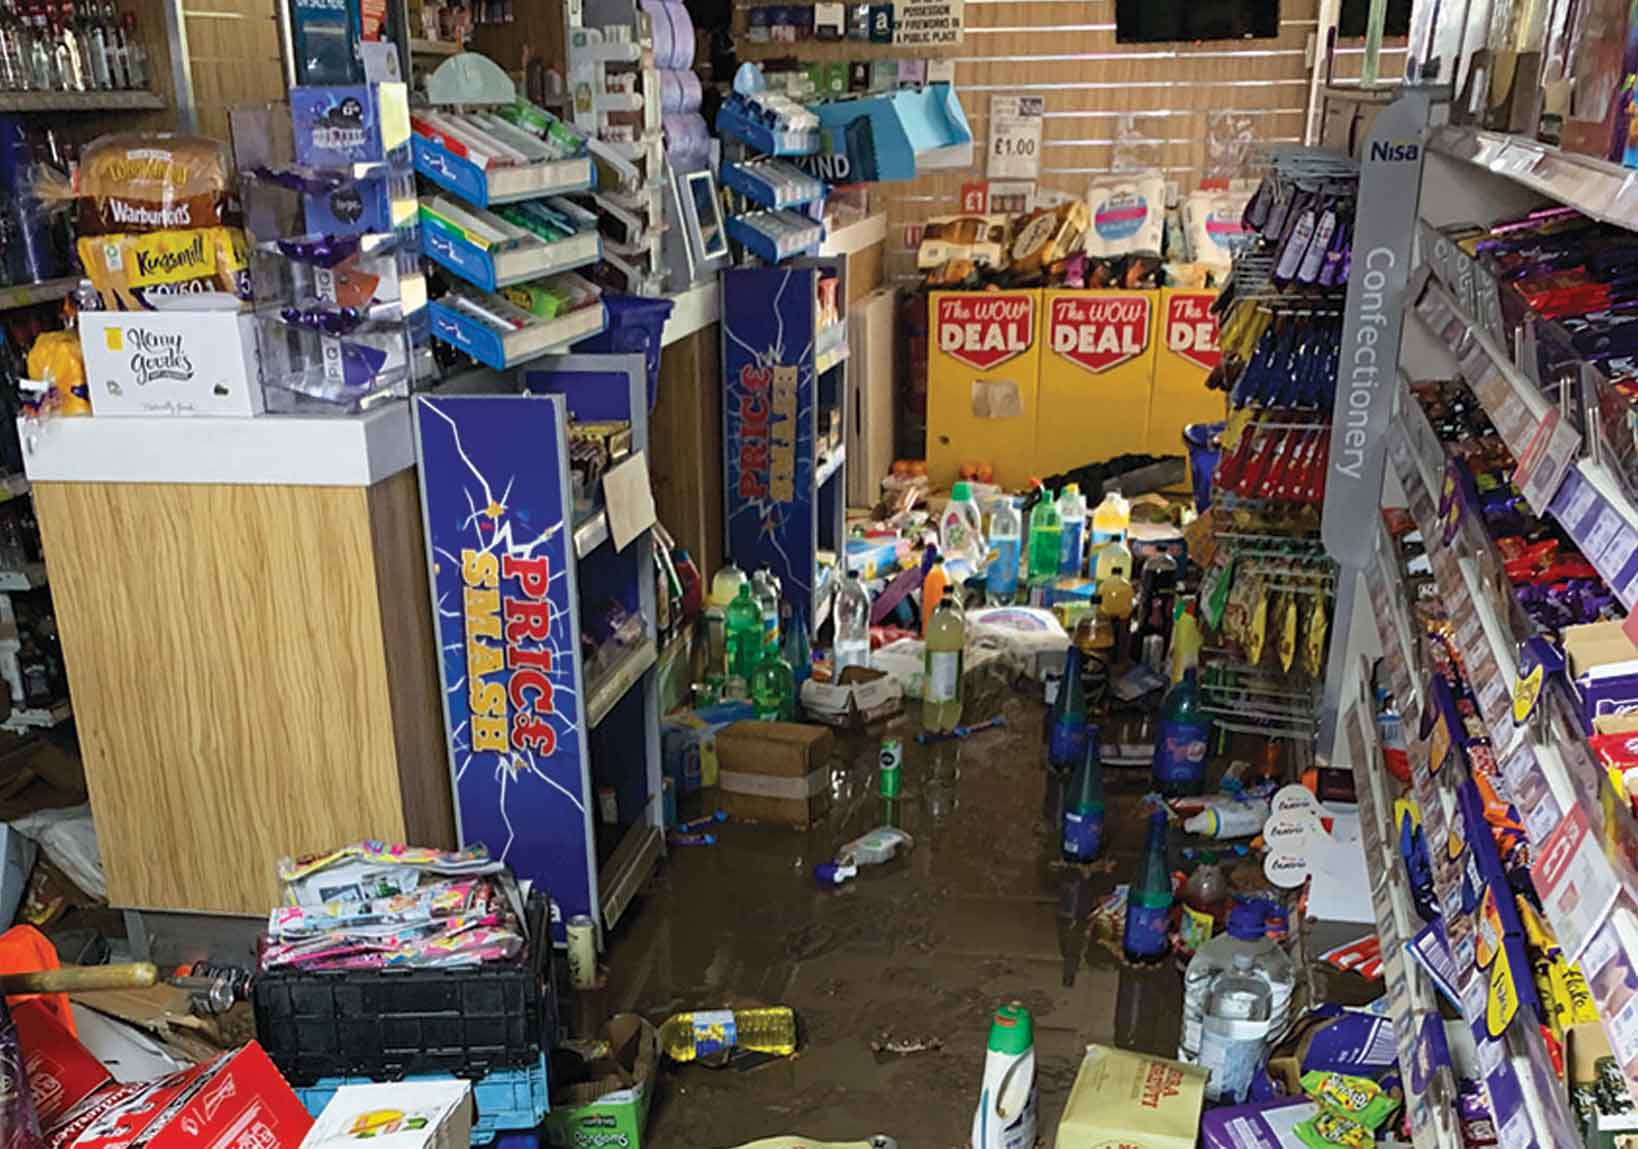 Severe weather costs UK retailers thousands